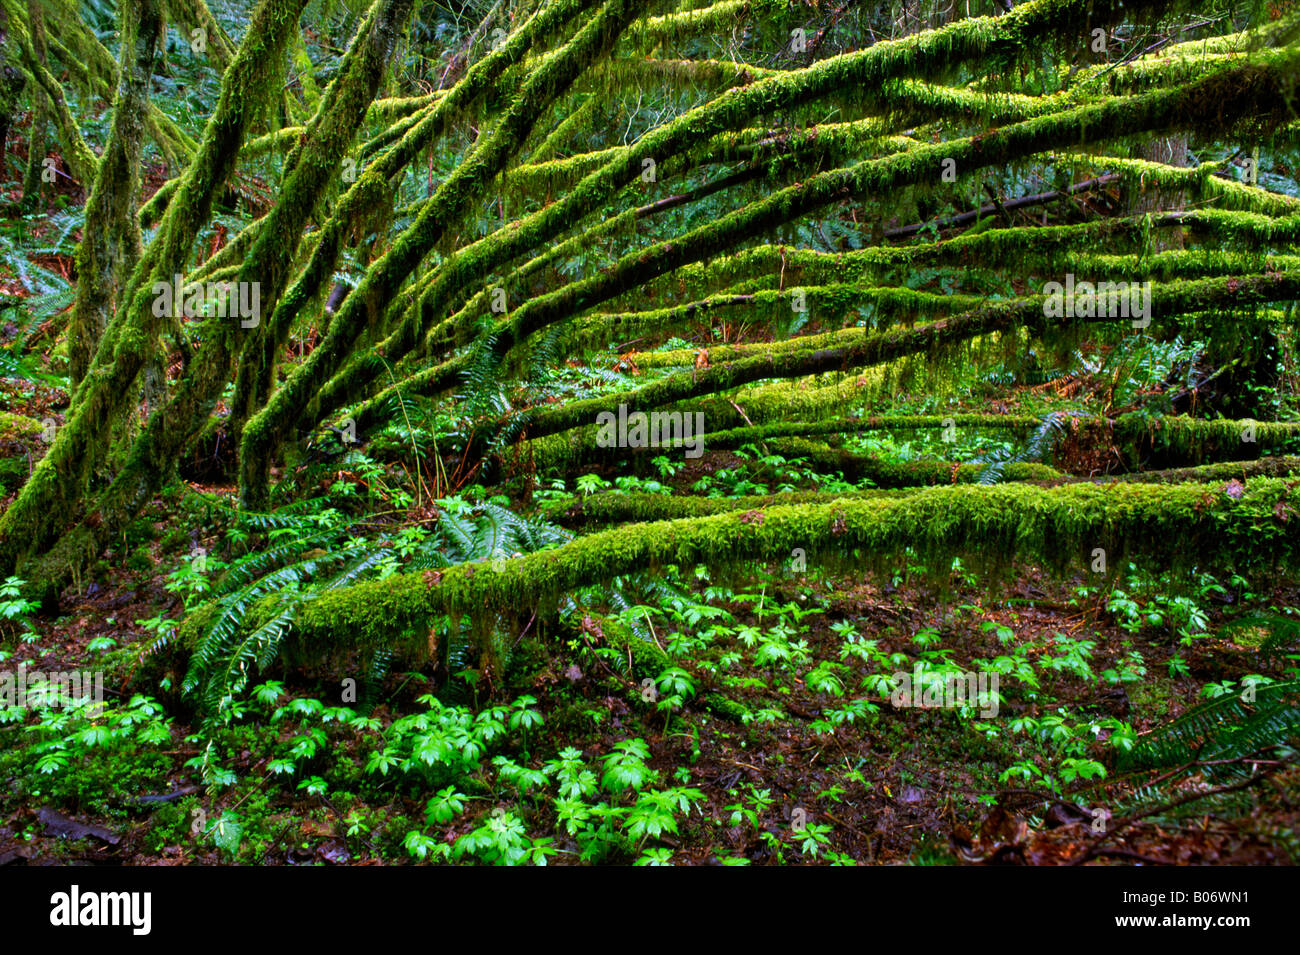 Mossy branches in the spring forms a catherdral-like covering of the forest floor, Tiger Mountain, Washington State, - Stock Image